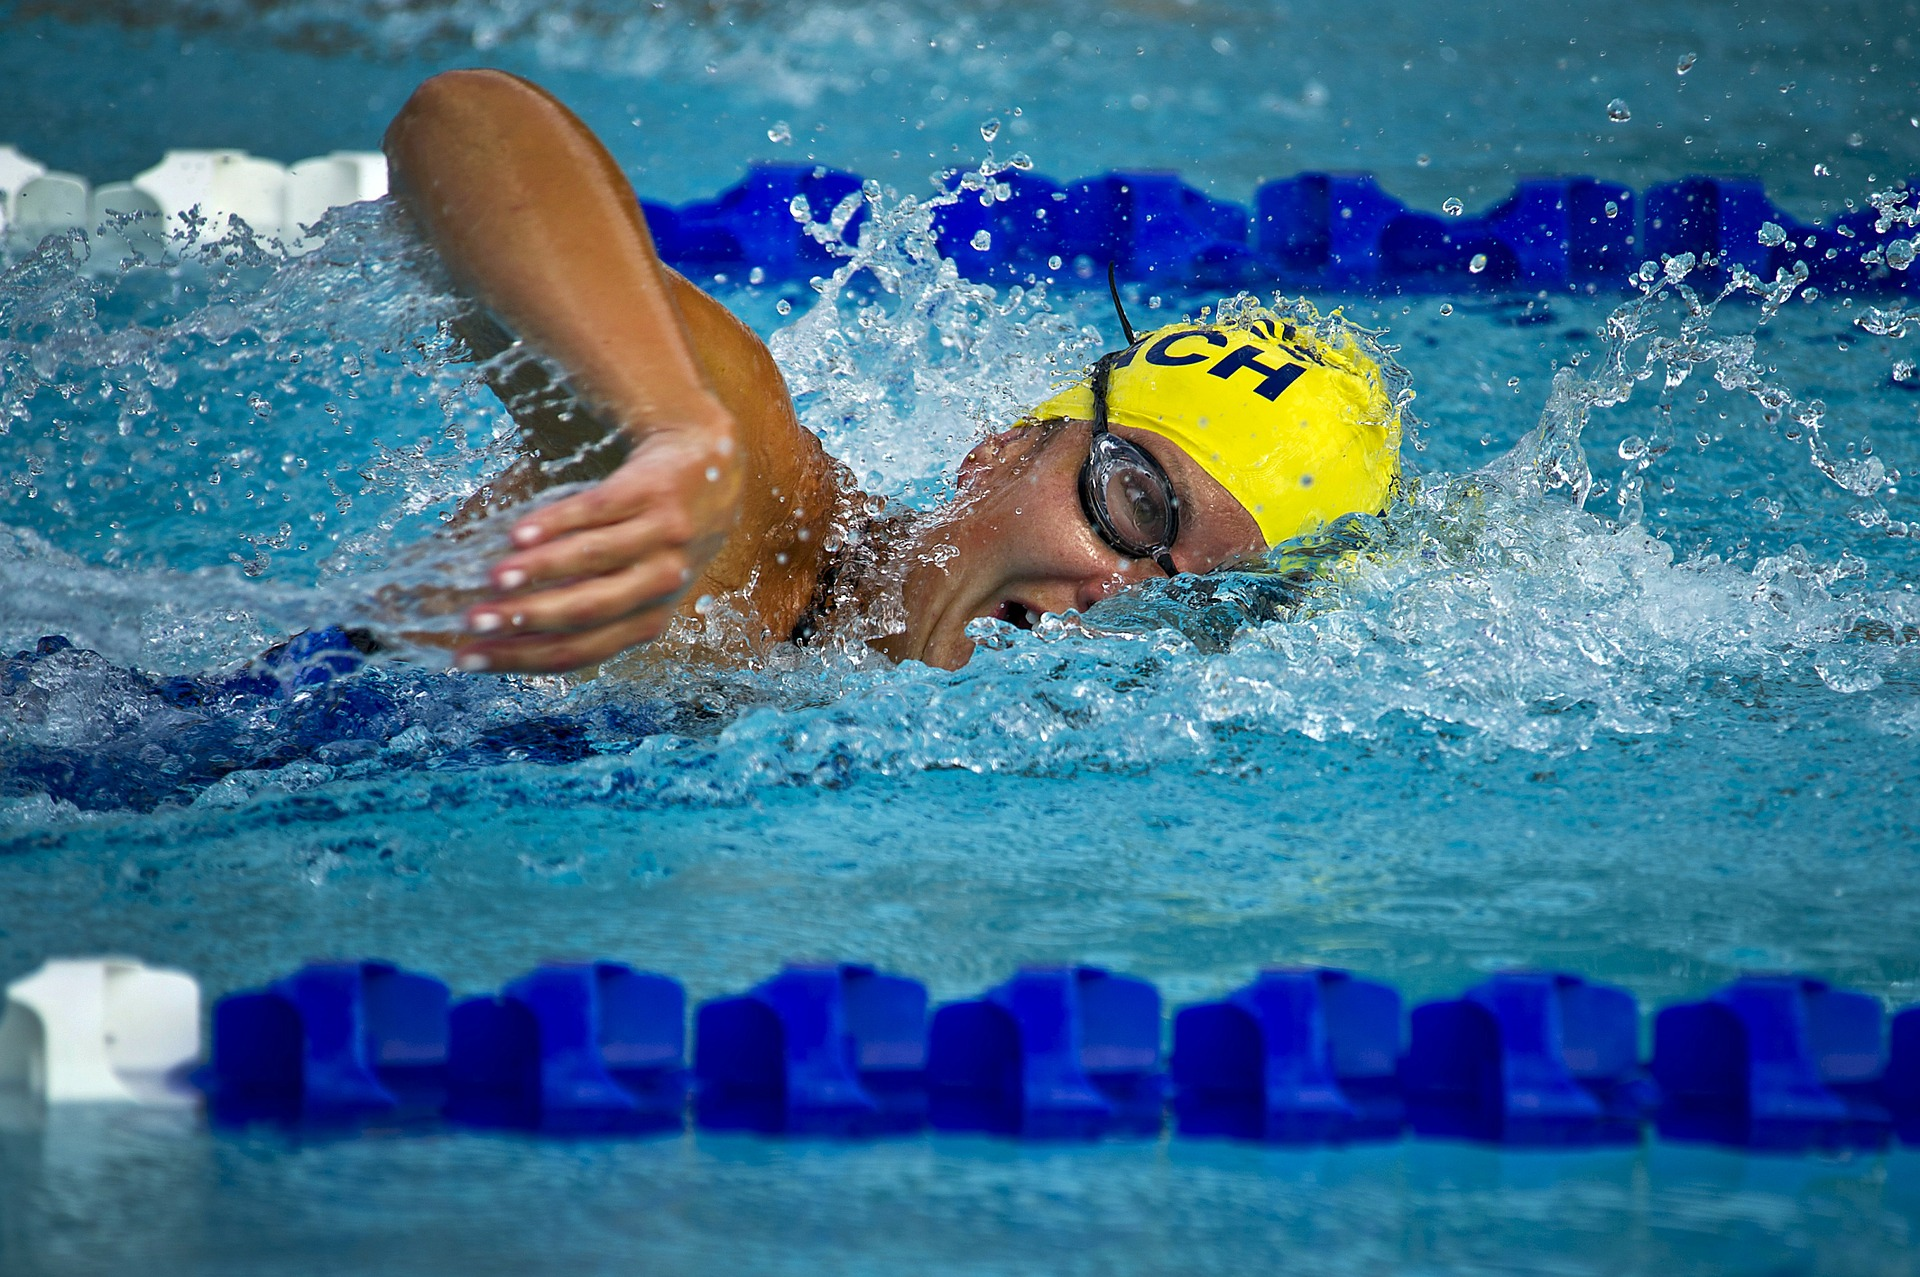 Discomfort in shoulder whilst swimming? It could be Swimmer's Shoulder